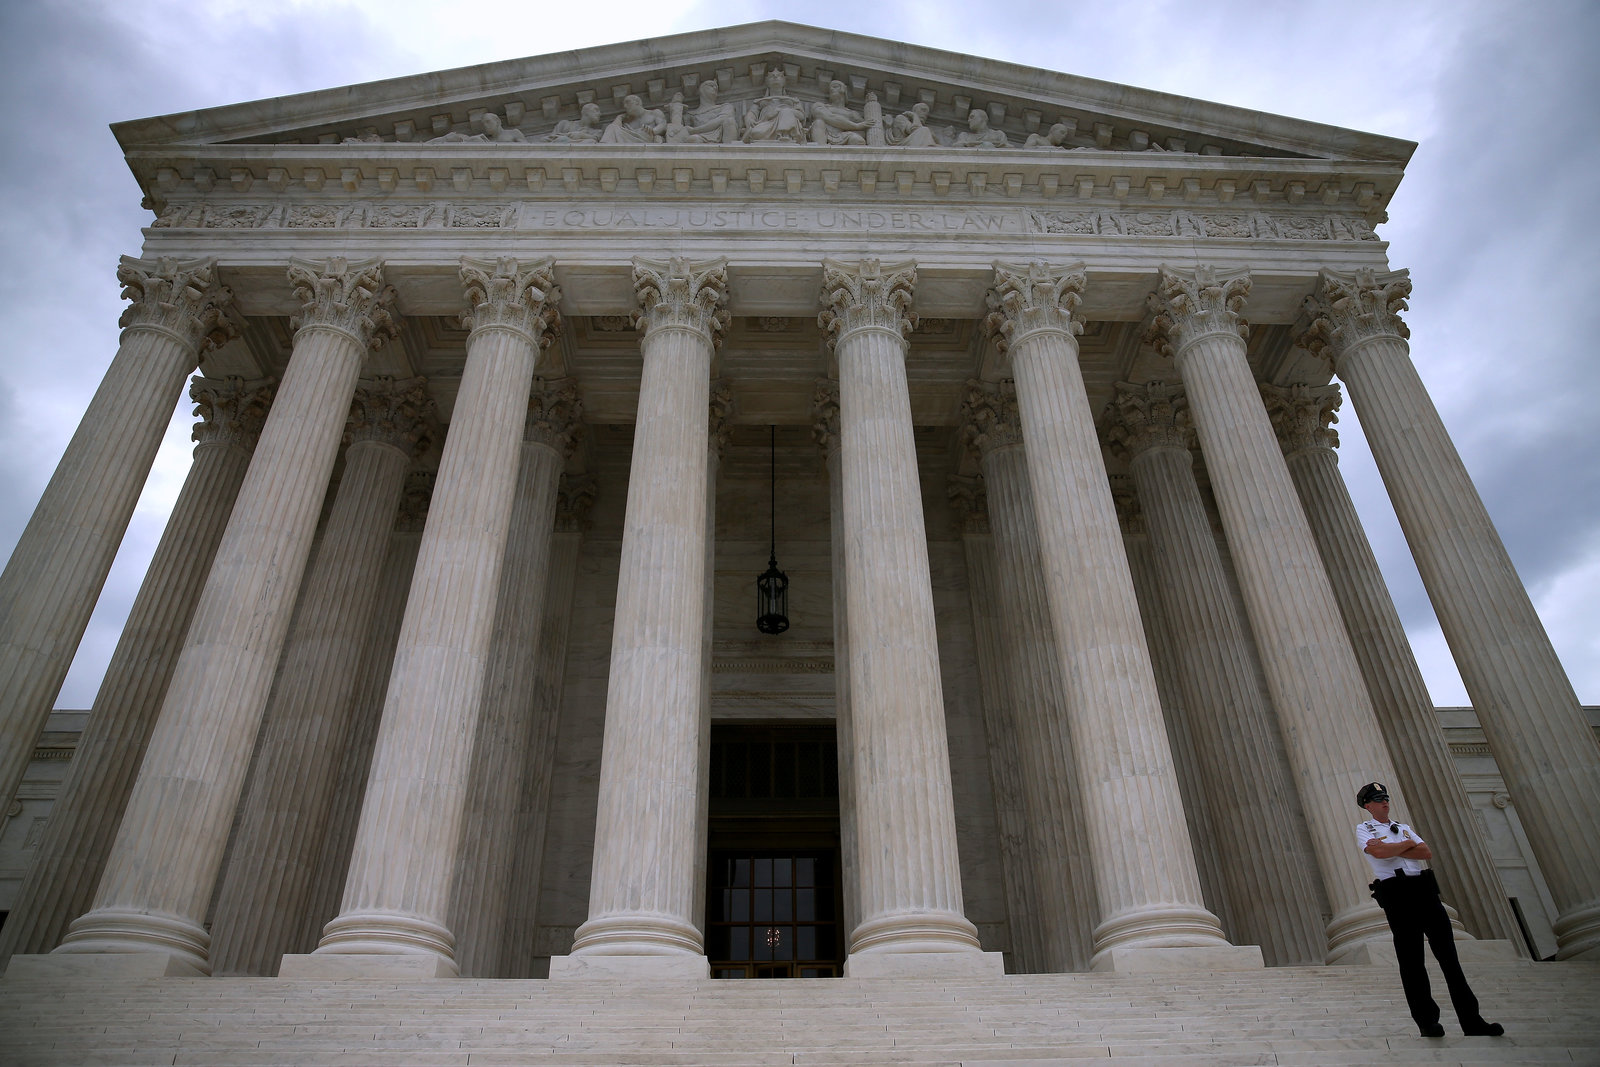 U.S. Supreme Court Building in Washington, D.C. Credit: Mark Wilson/Getty Images